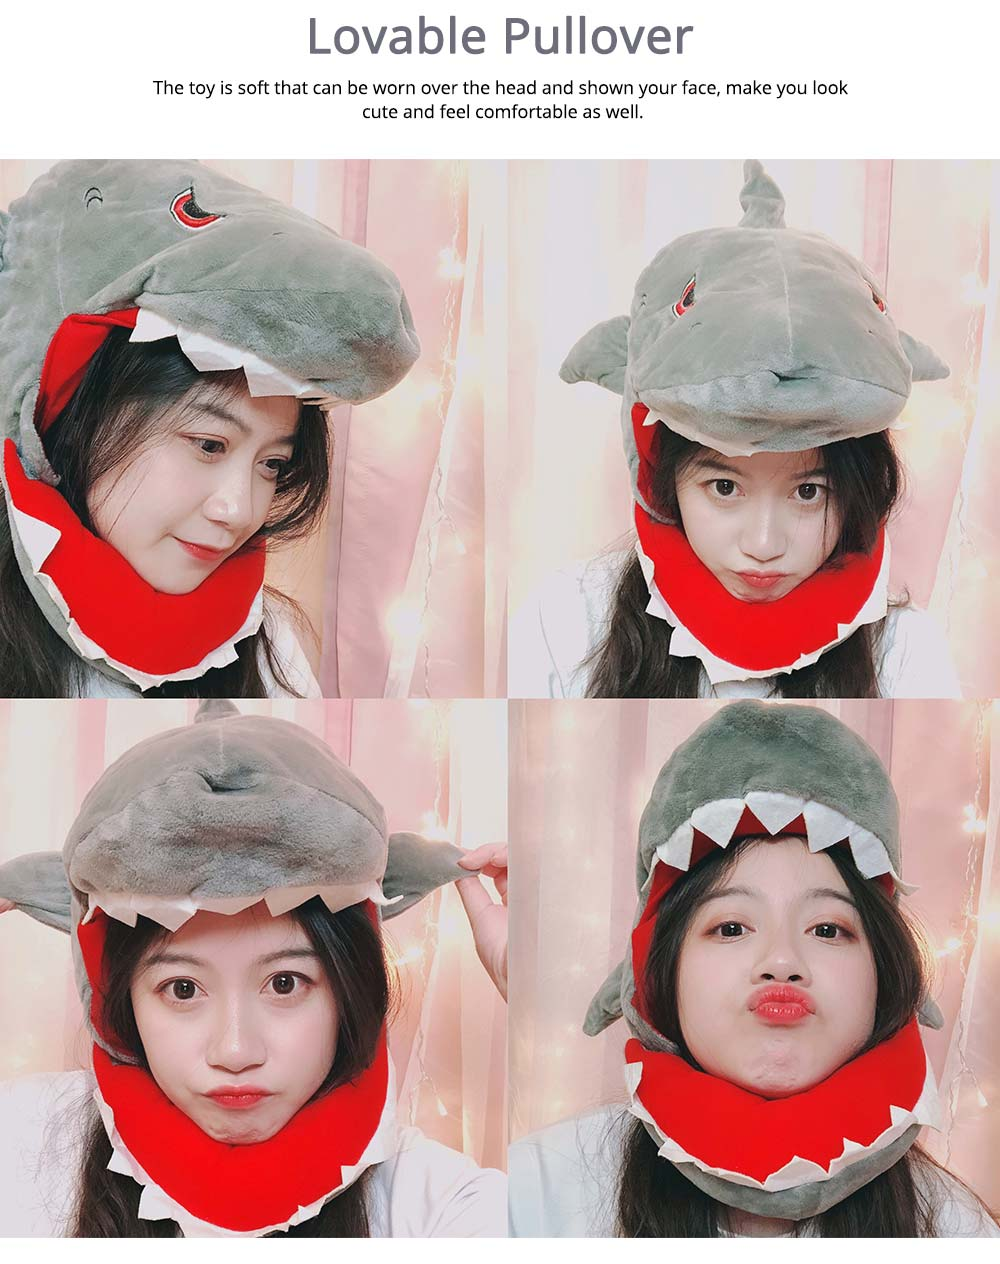 Stuffed Toys Funny Pillow Sharks and Dinosaurs Shape PP Plush Material Gift for Girl  4